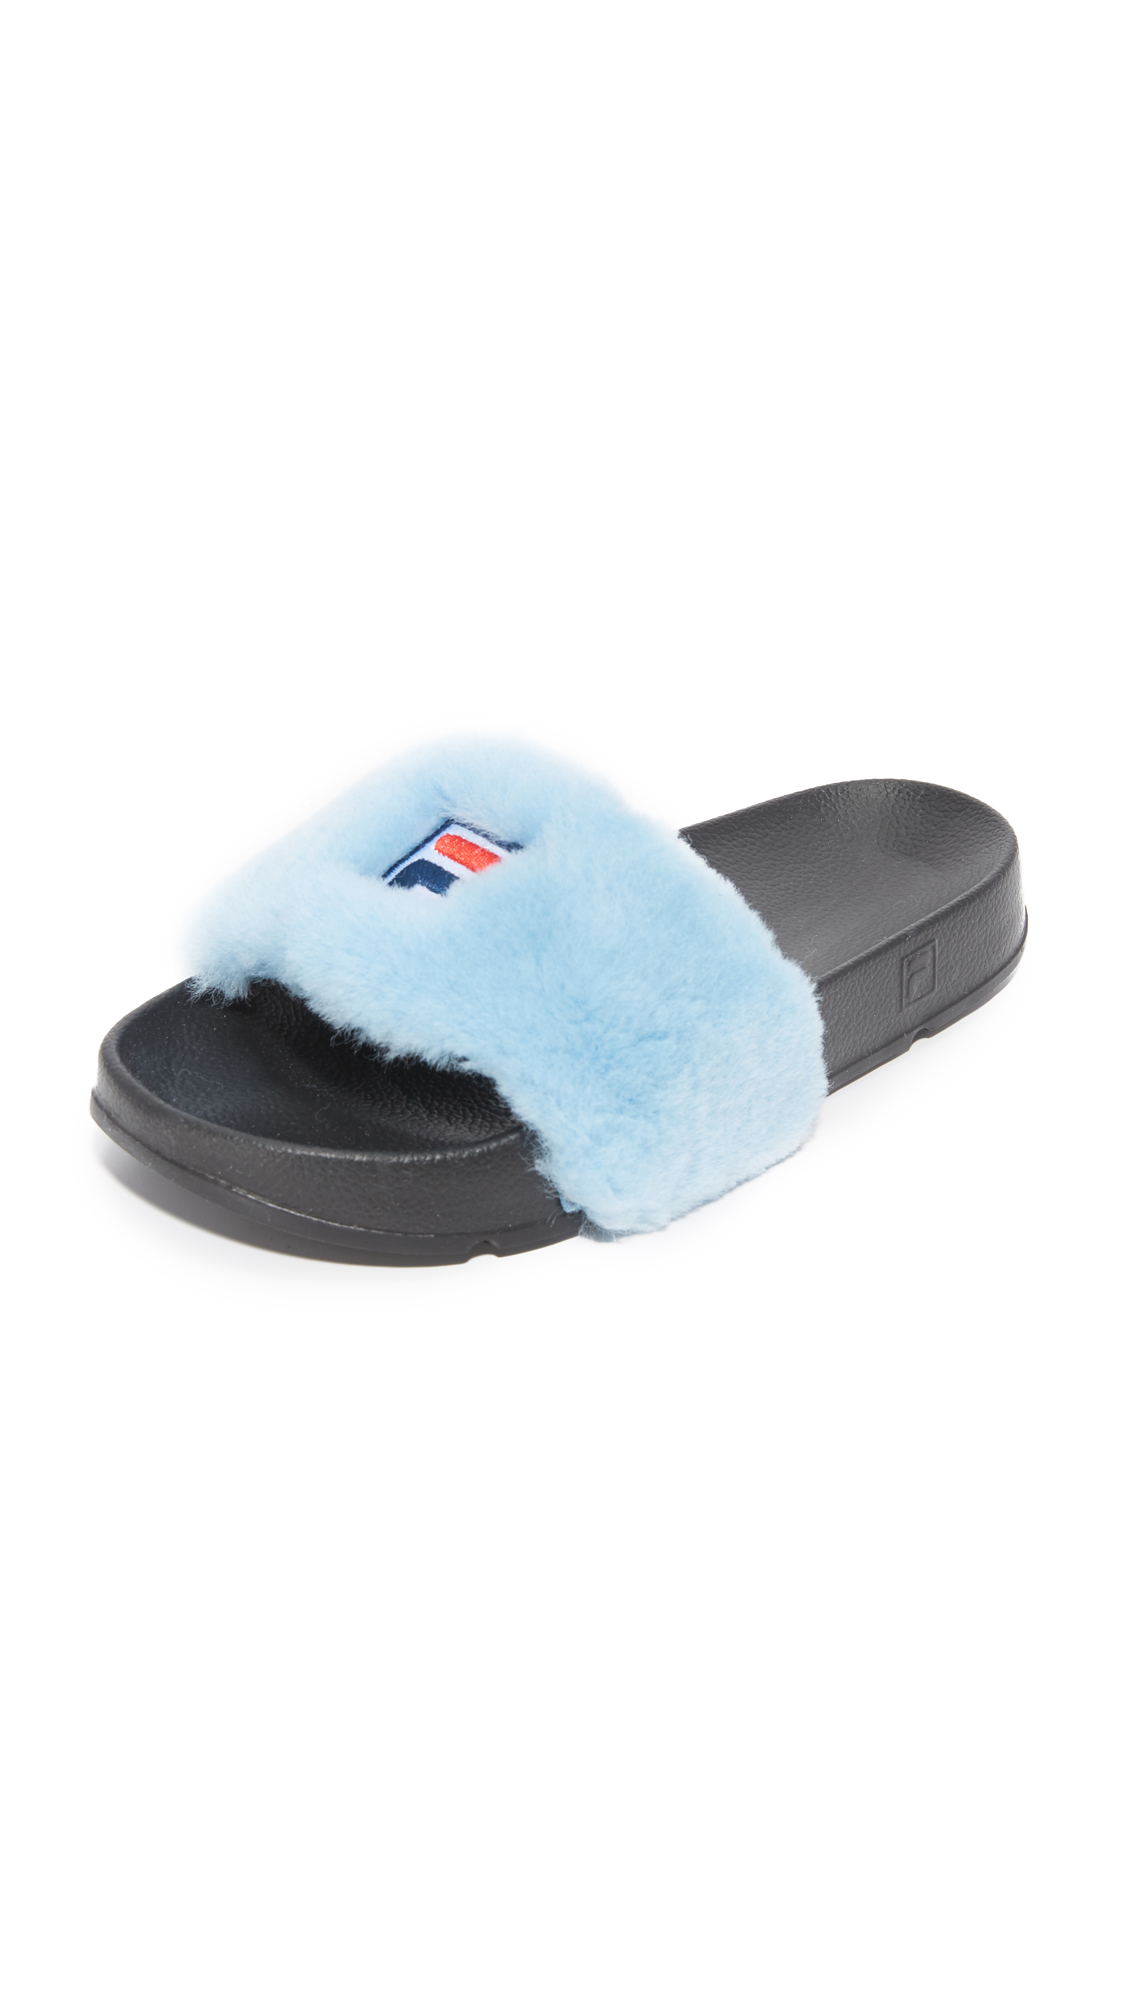 These plush fur FILA x Baja East slides blend luxury with athletic style. Molded foam rubber footbed. Rubber sole. Fur: Dyed sheep shearling, from China. Imported, China. Measurements Platform: 1.25in / 30mm THIS ITEM CANNOT BE SHIPPED